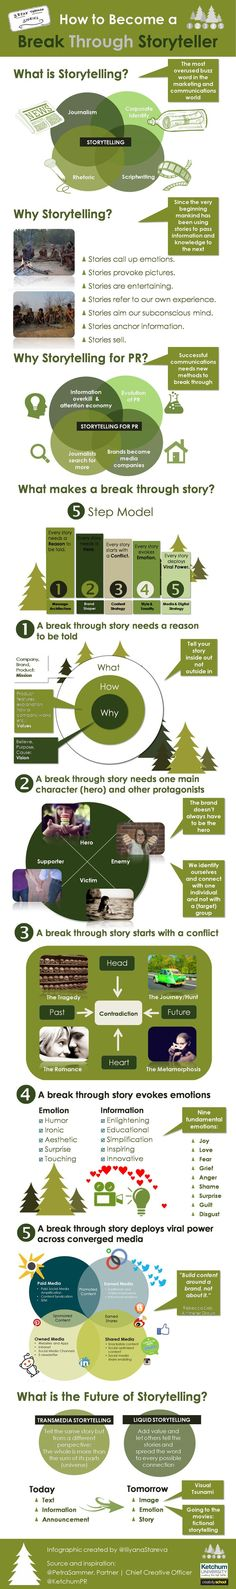 How to become a Break Through Storyteller. #Marketingonline #infographic